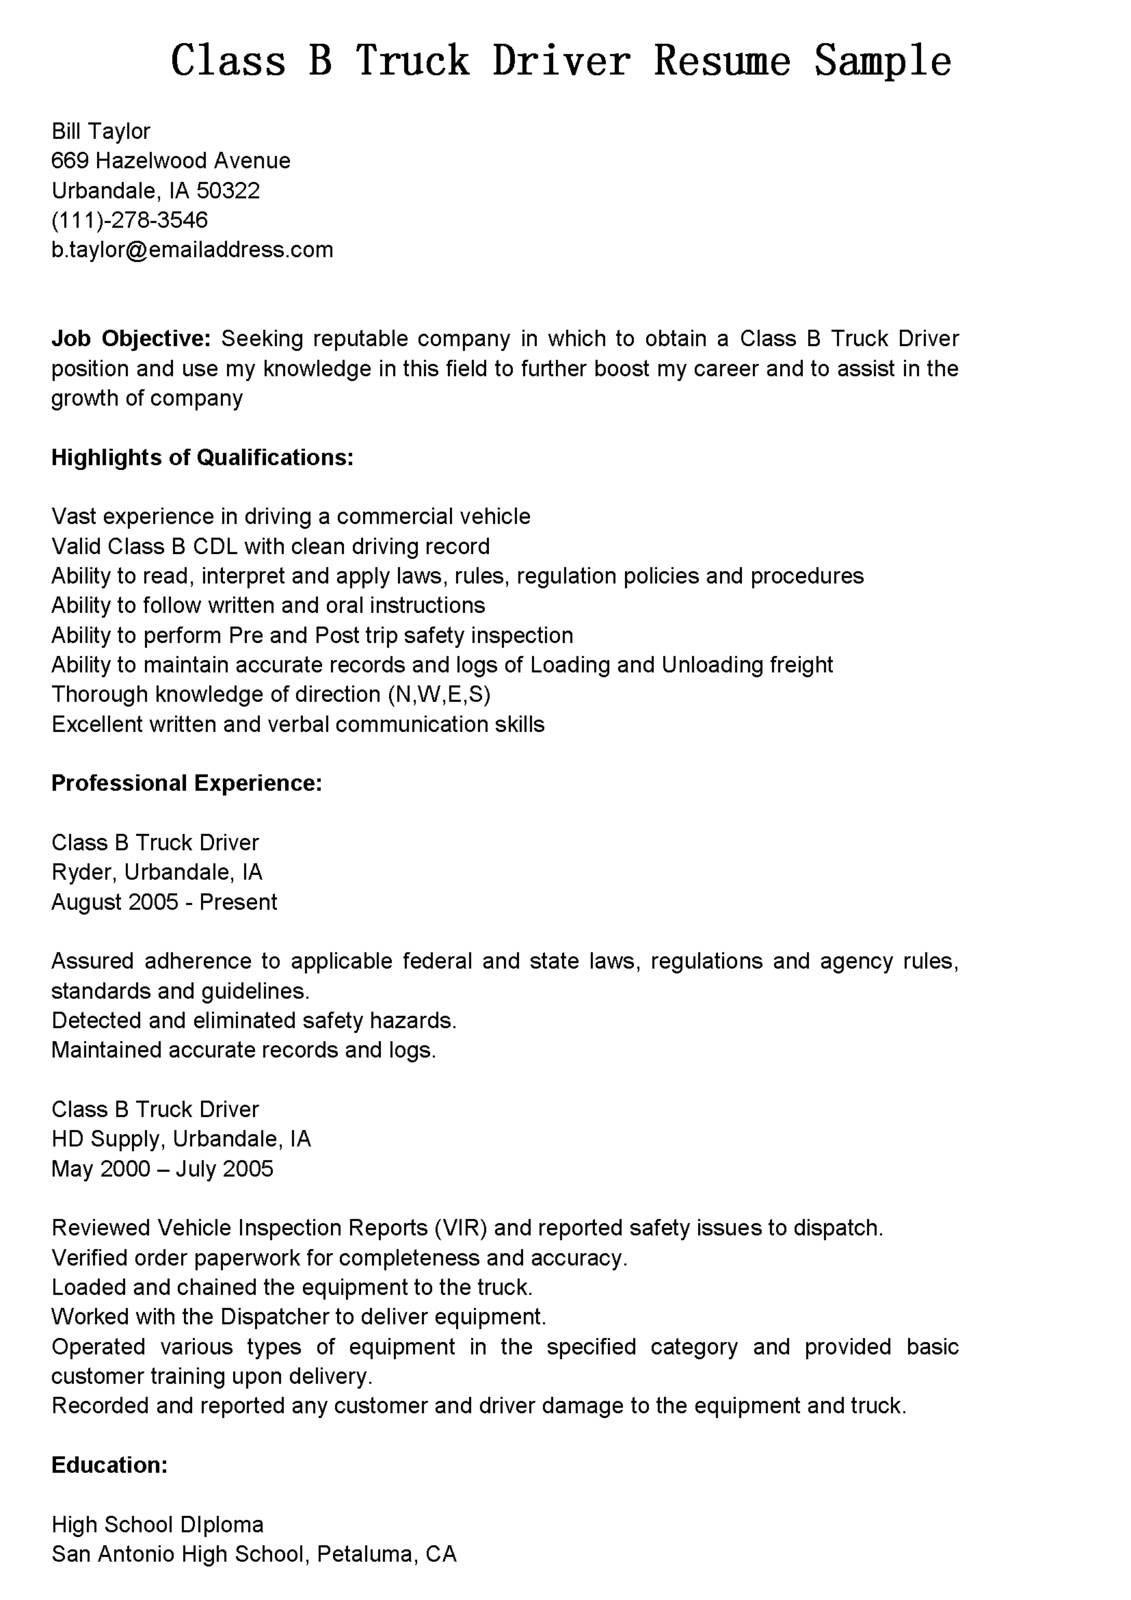 Free resume examples for truck drivers